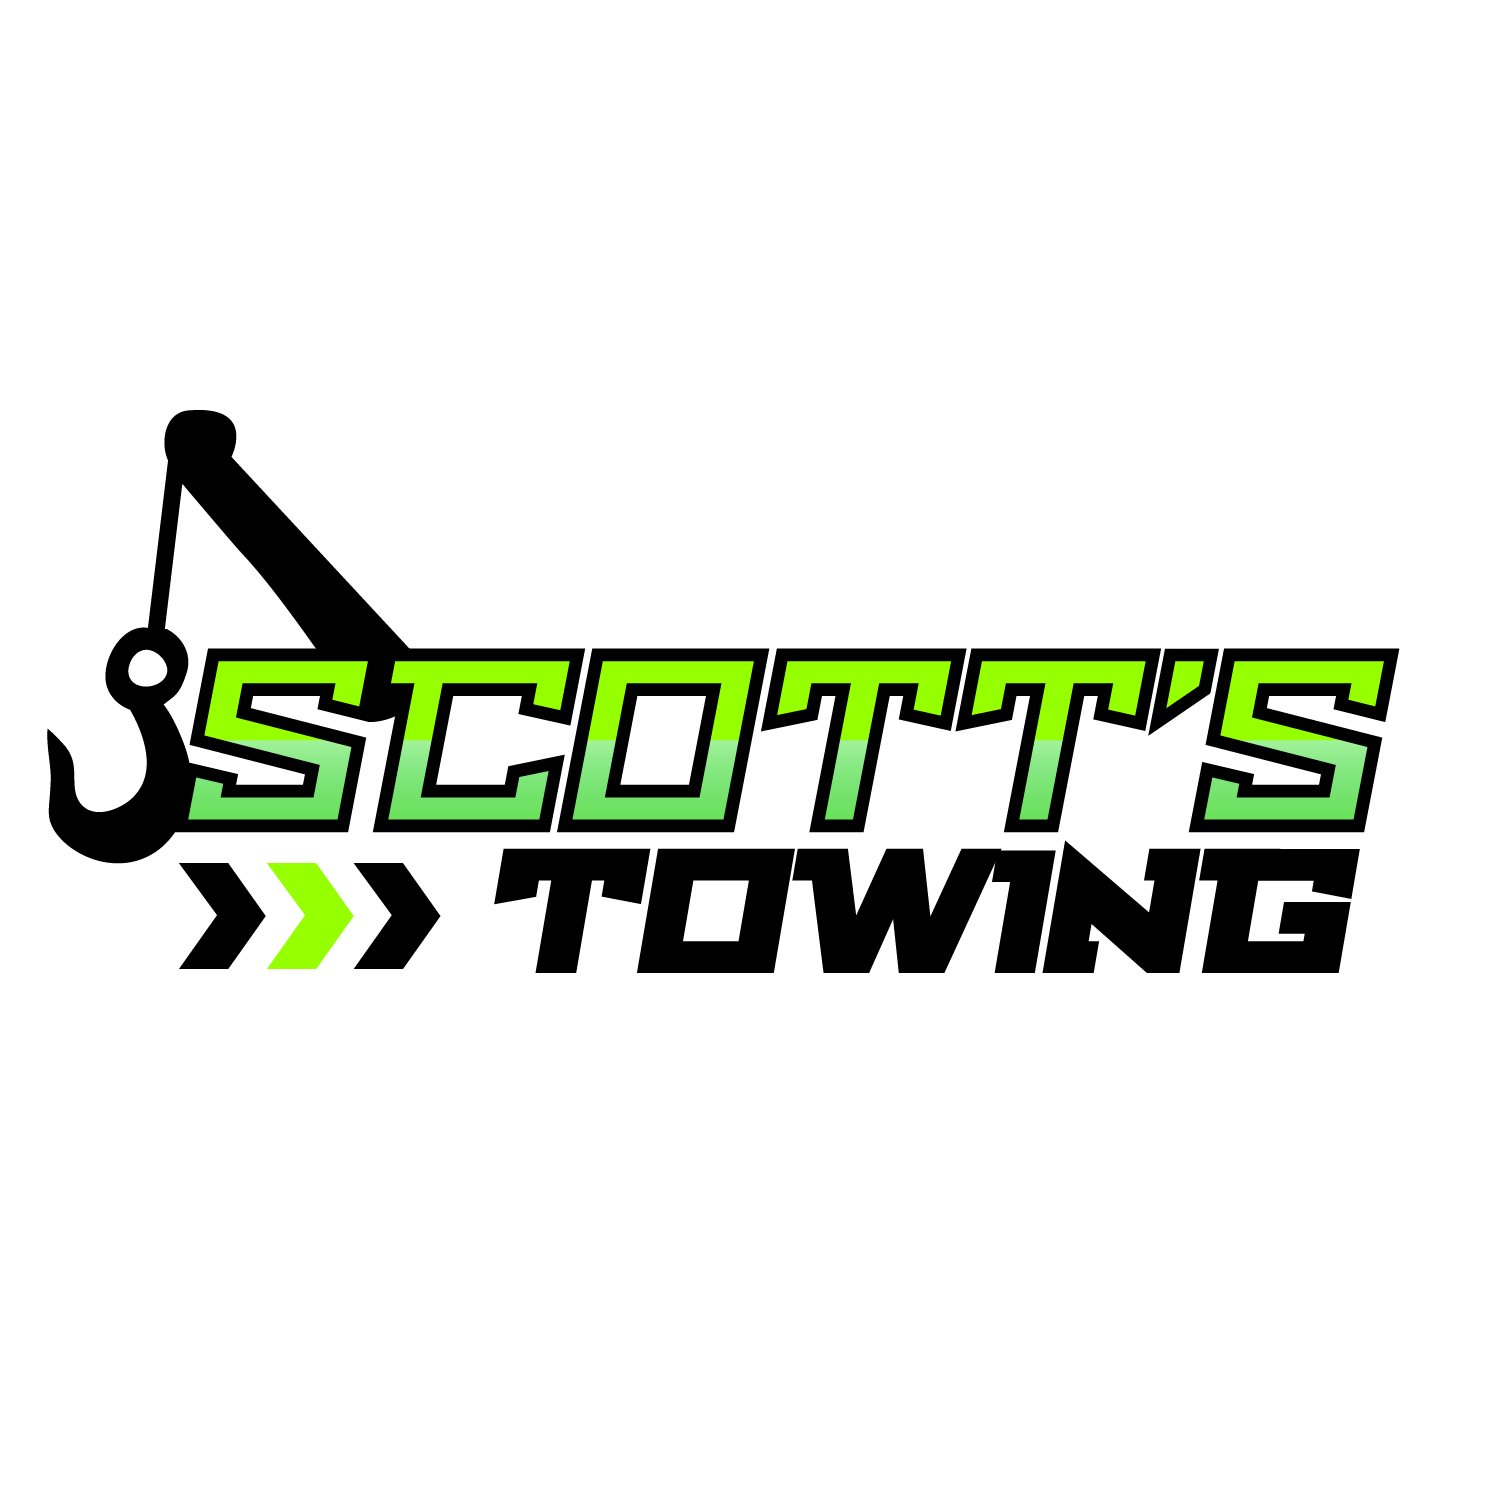 Scott's Towing